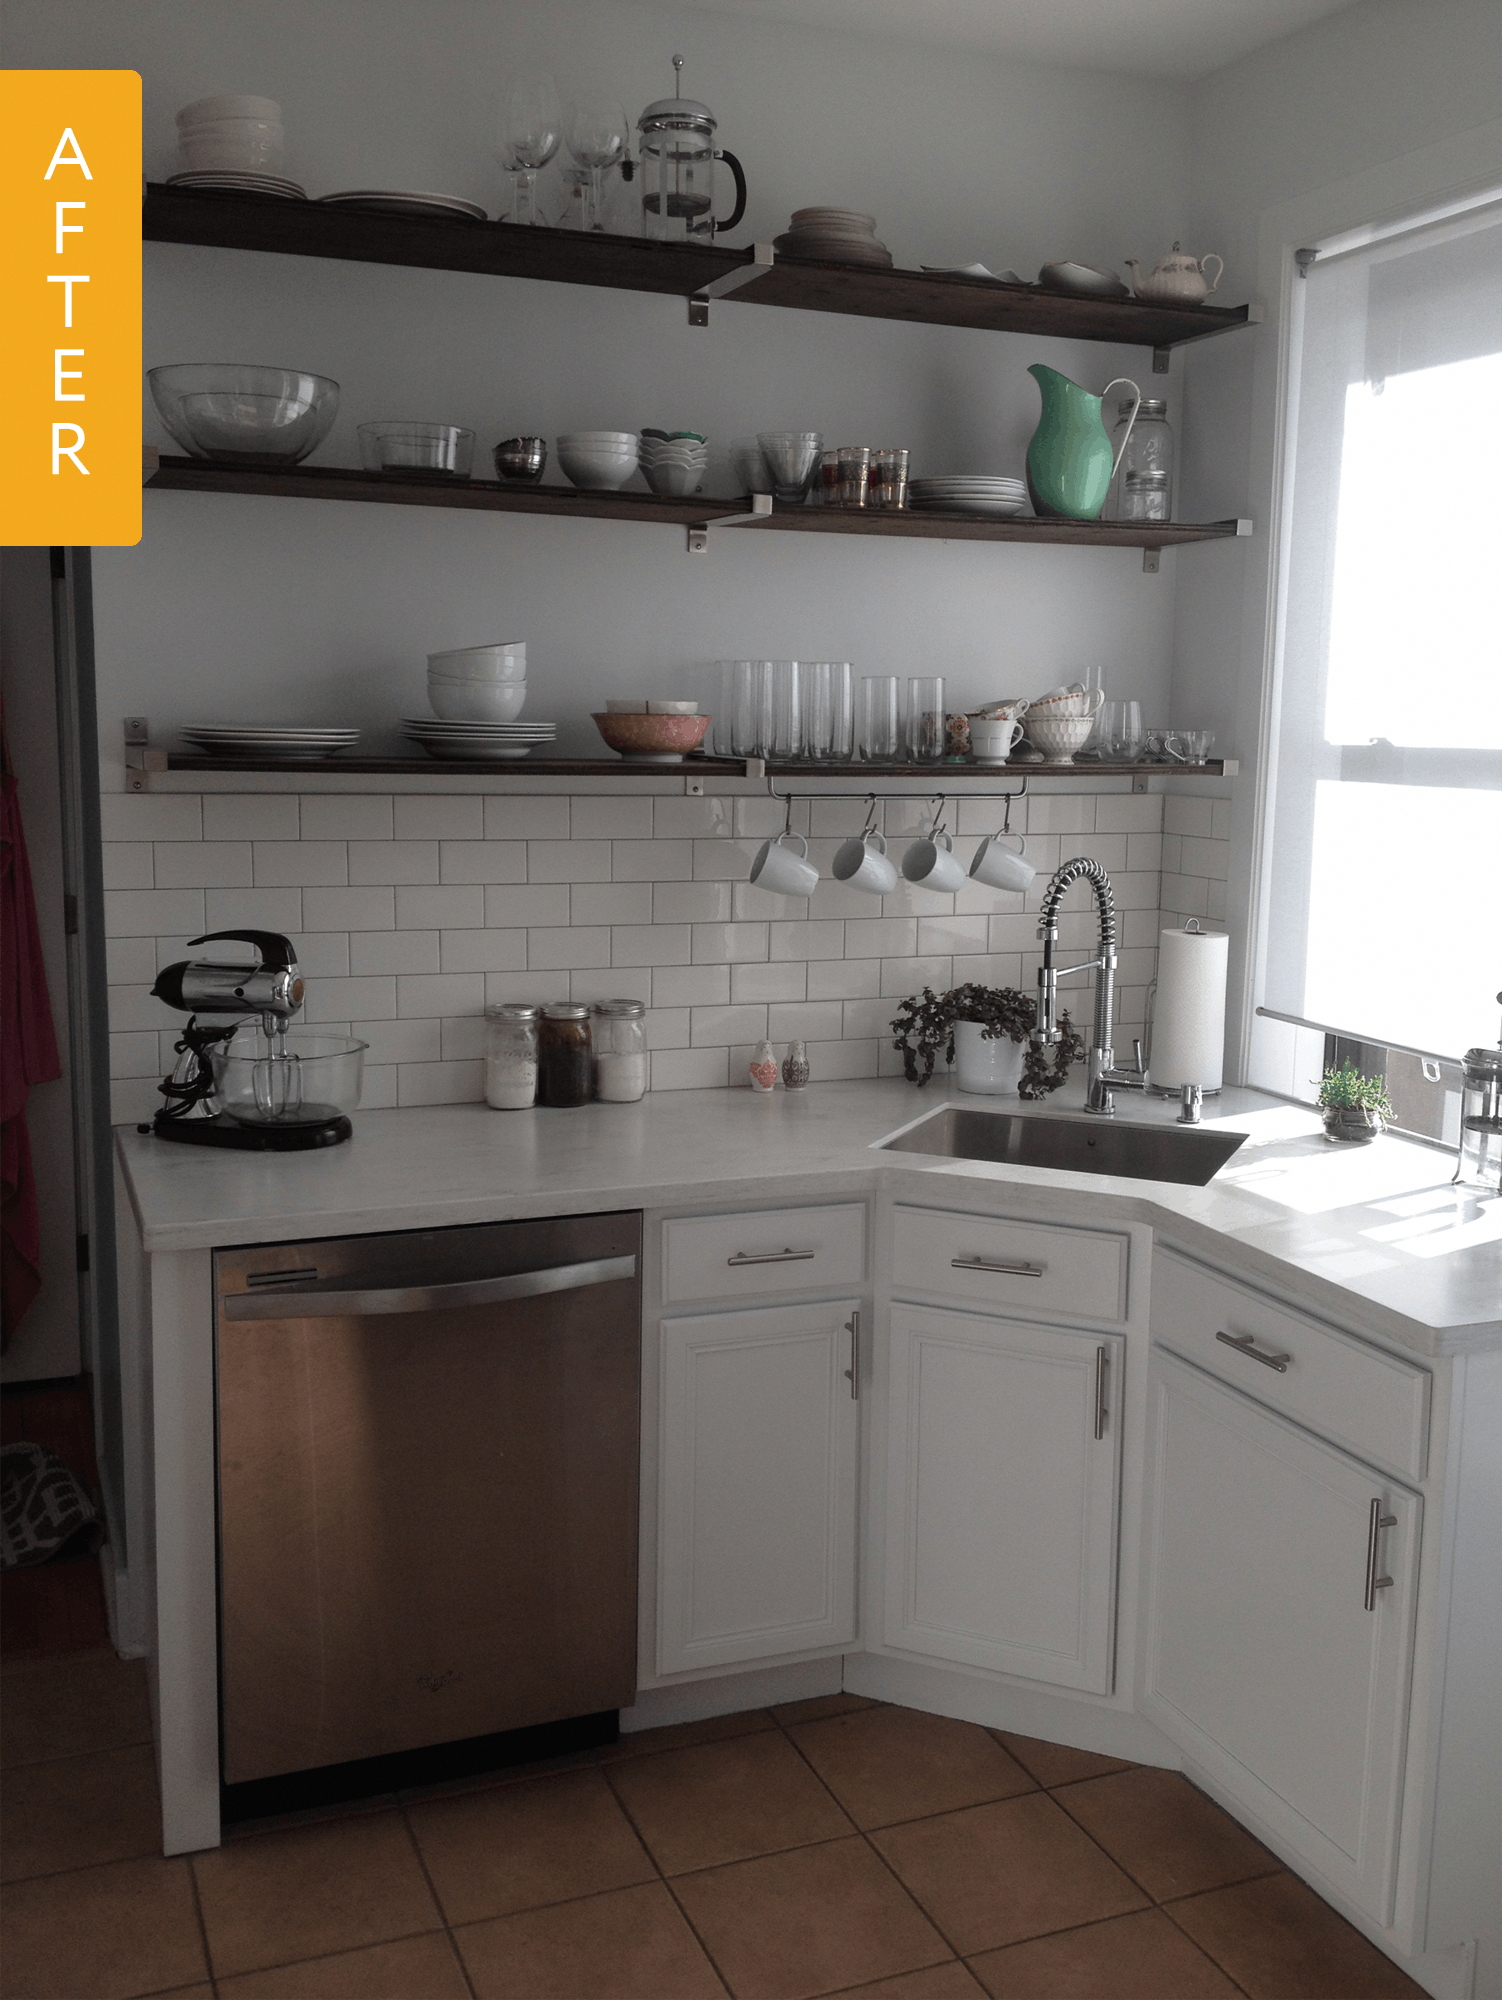 Before After A Tiny Kitchen Lightens Up With A 6 000 Remodel Reader Kitchen Remodel Kitche Kitchen Design Small Kitchen Remodel Small Kitchen Renovation